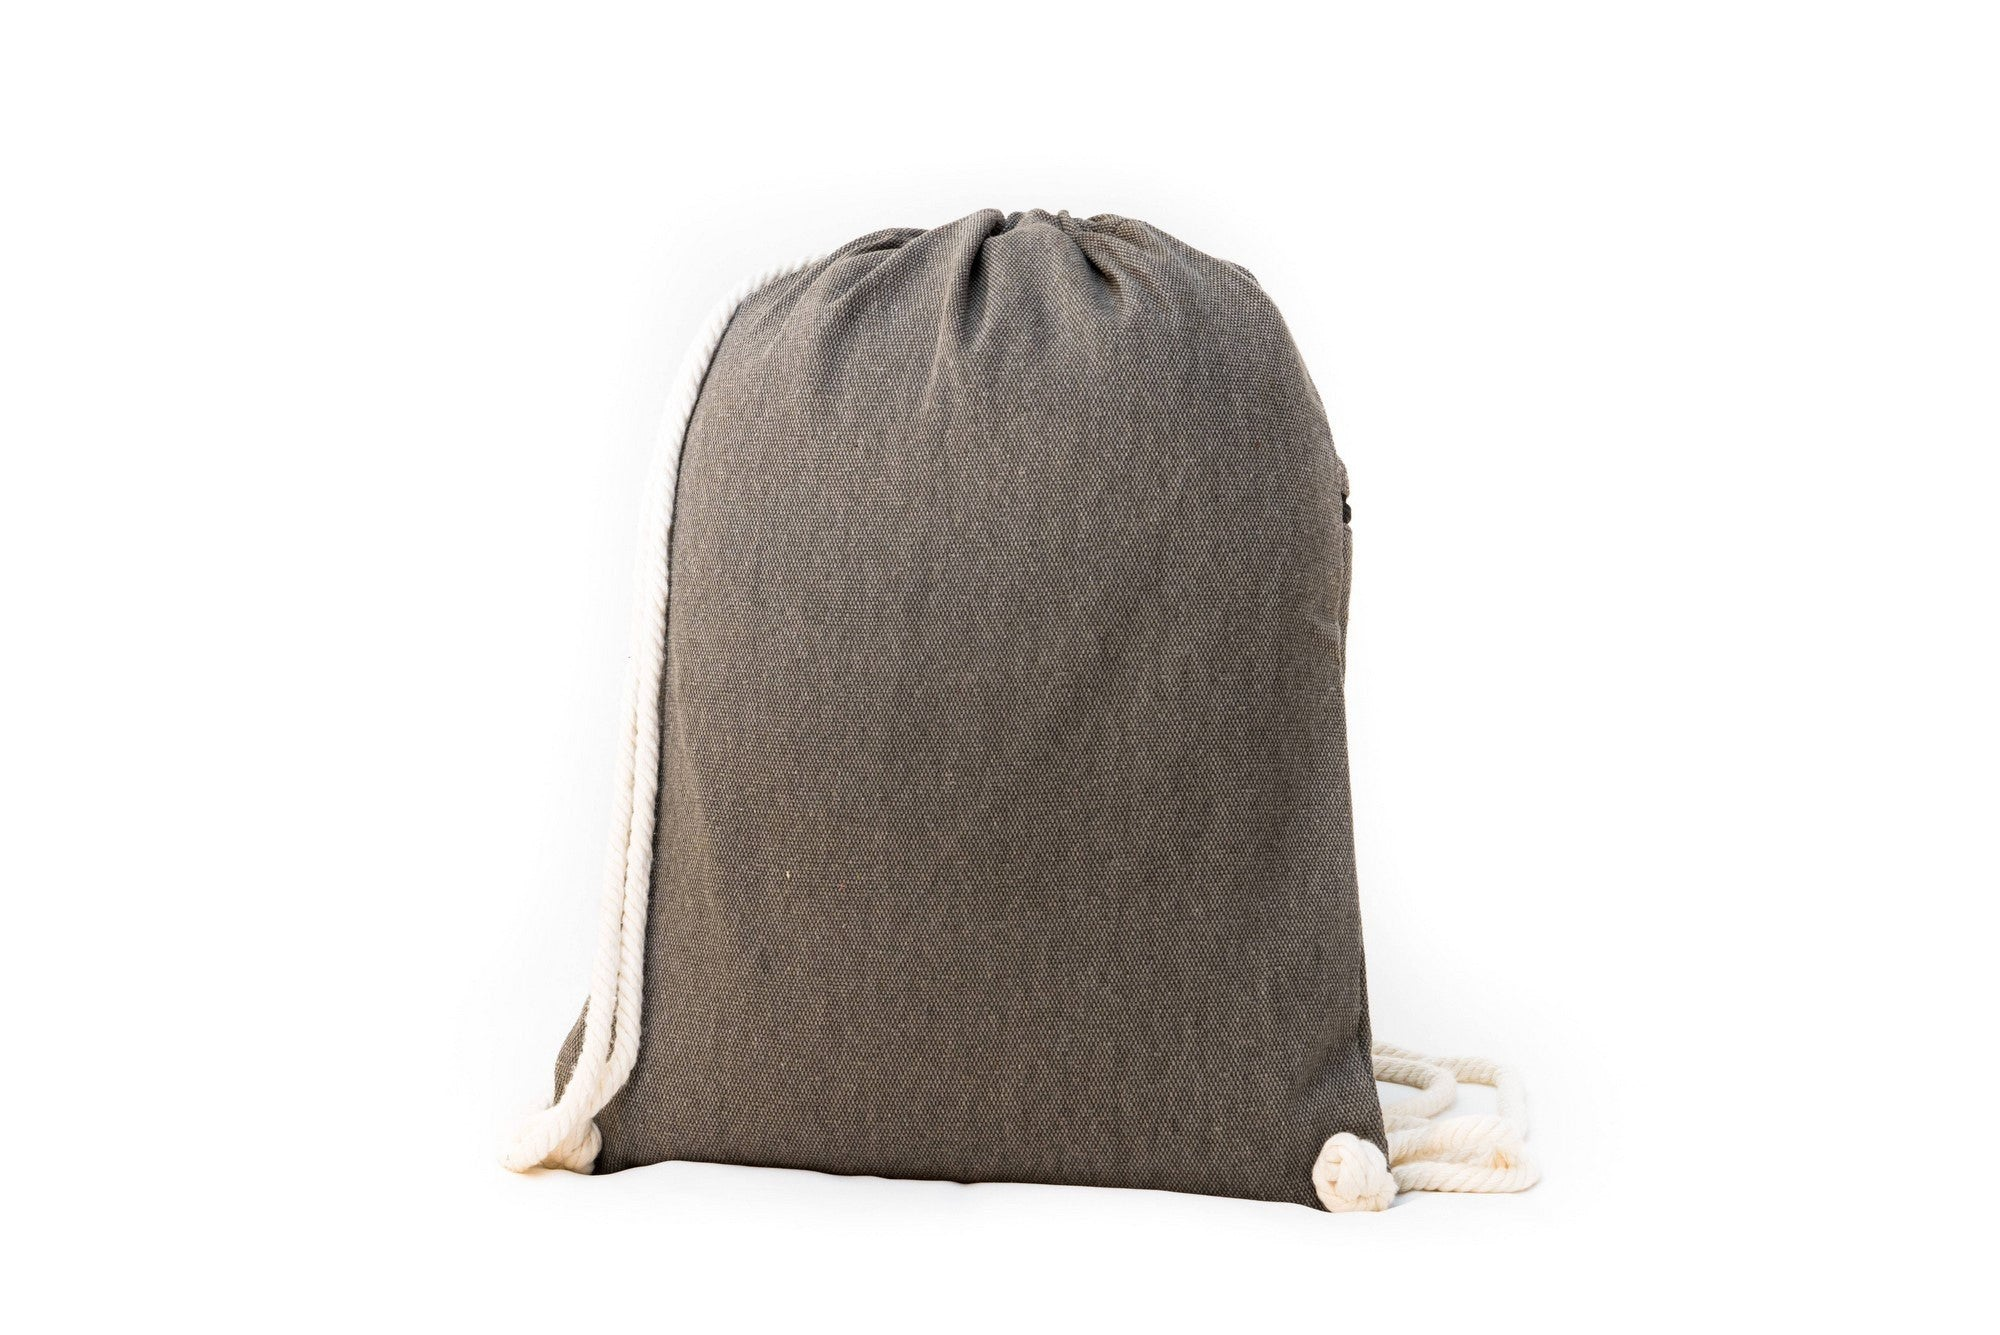 Drawstring Backpack - Drawstring Backpack - Canvas Cinch Daypack Sackpack By Lemur Bags (Stone Gray)